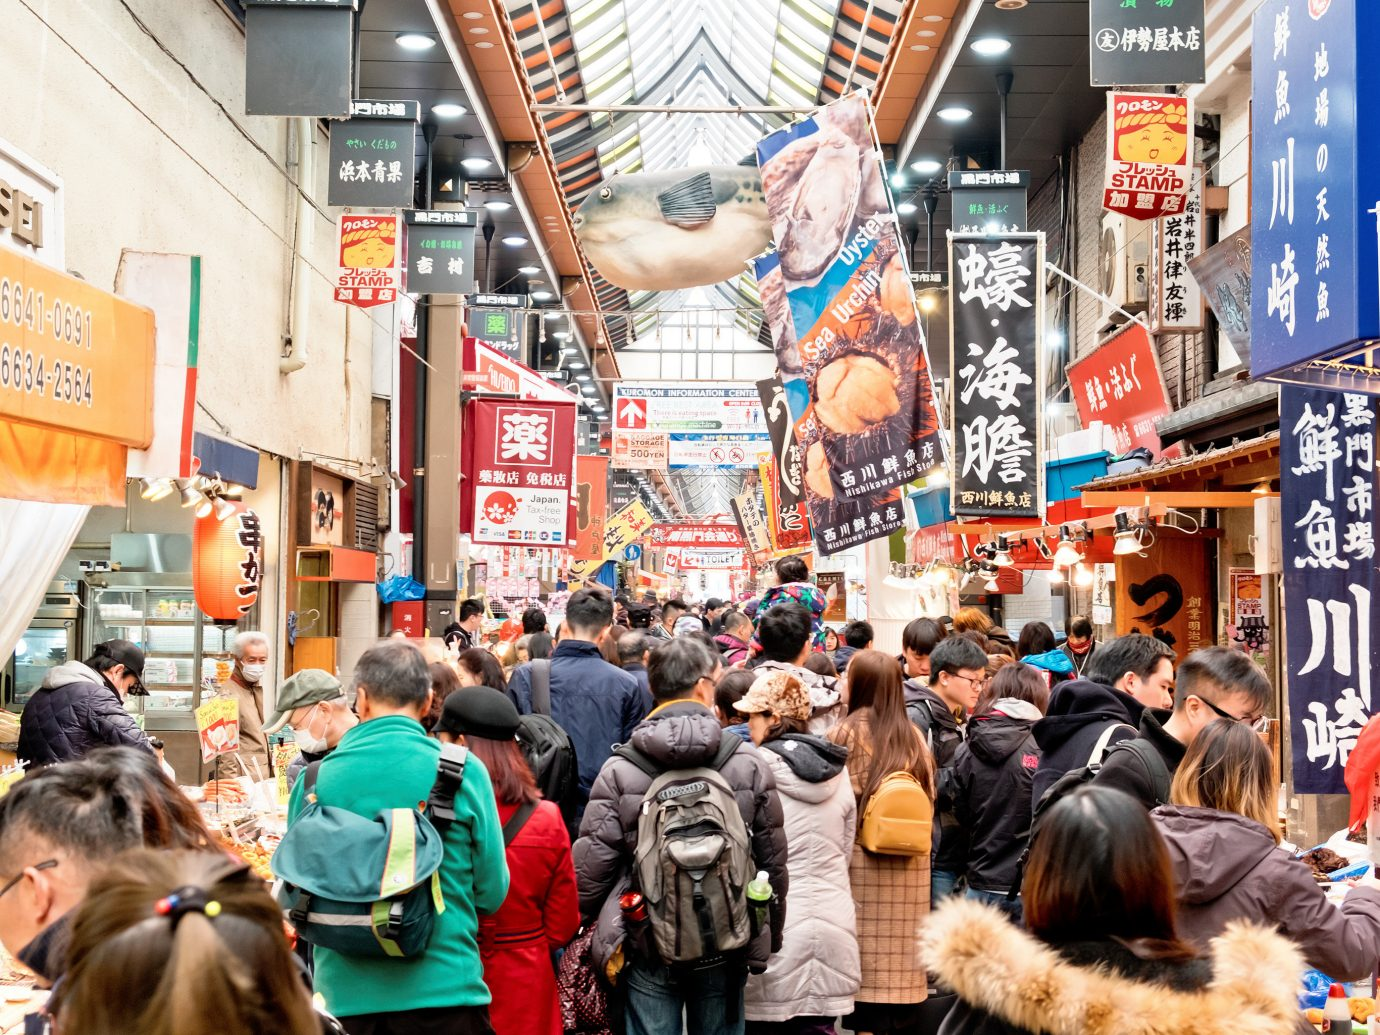 Japan Trip Ideas person street public space market urban area shopping crowd City marketplace scene bazaar retail service store